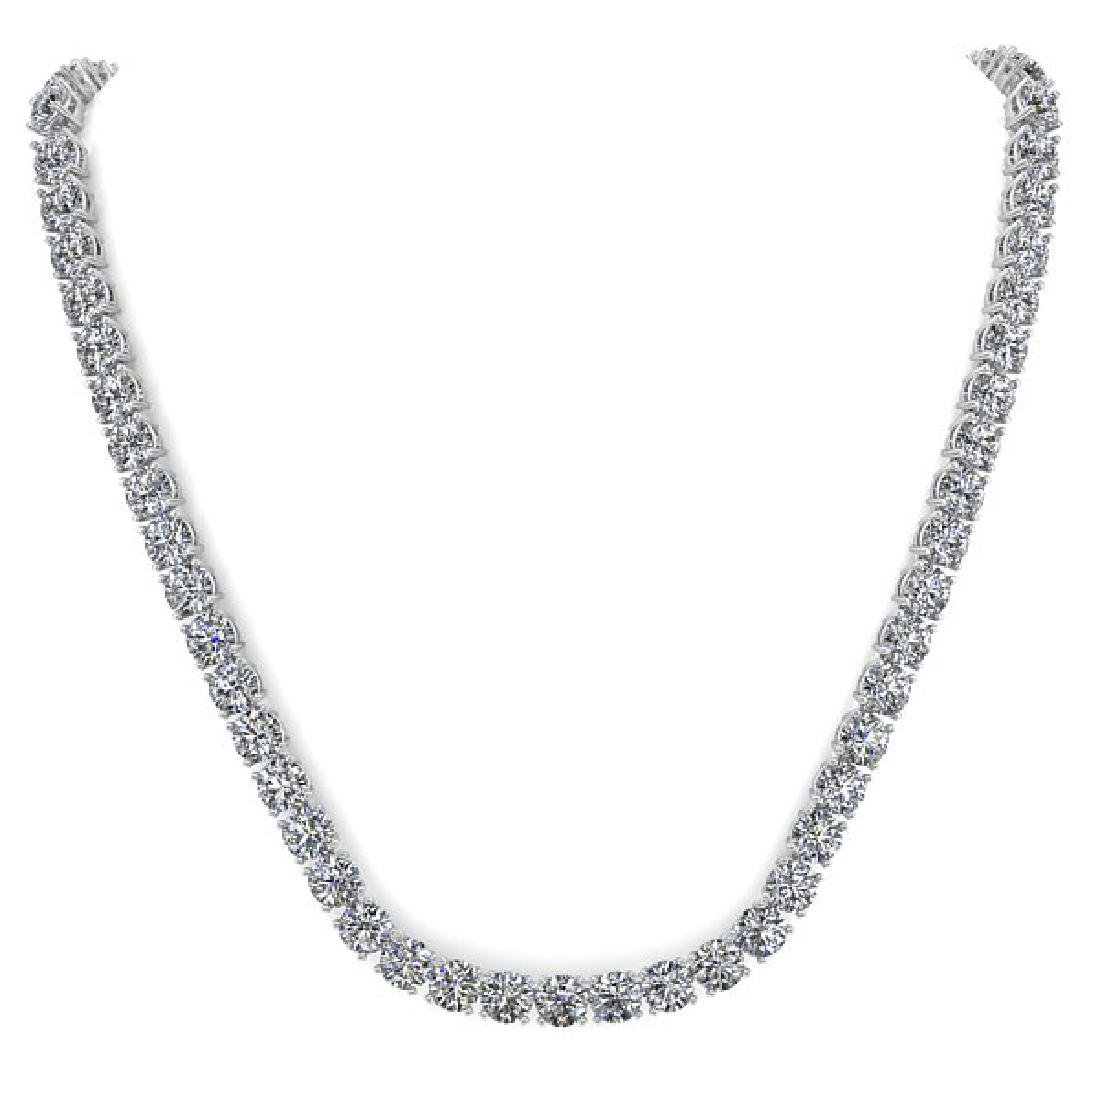 30 CTW Certified SI Diamond Necklace 14K White Gold - 3